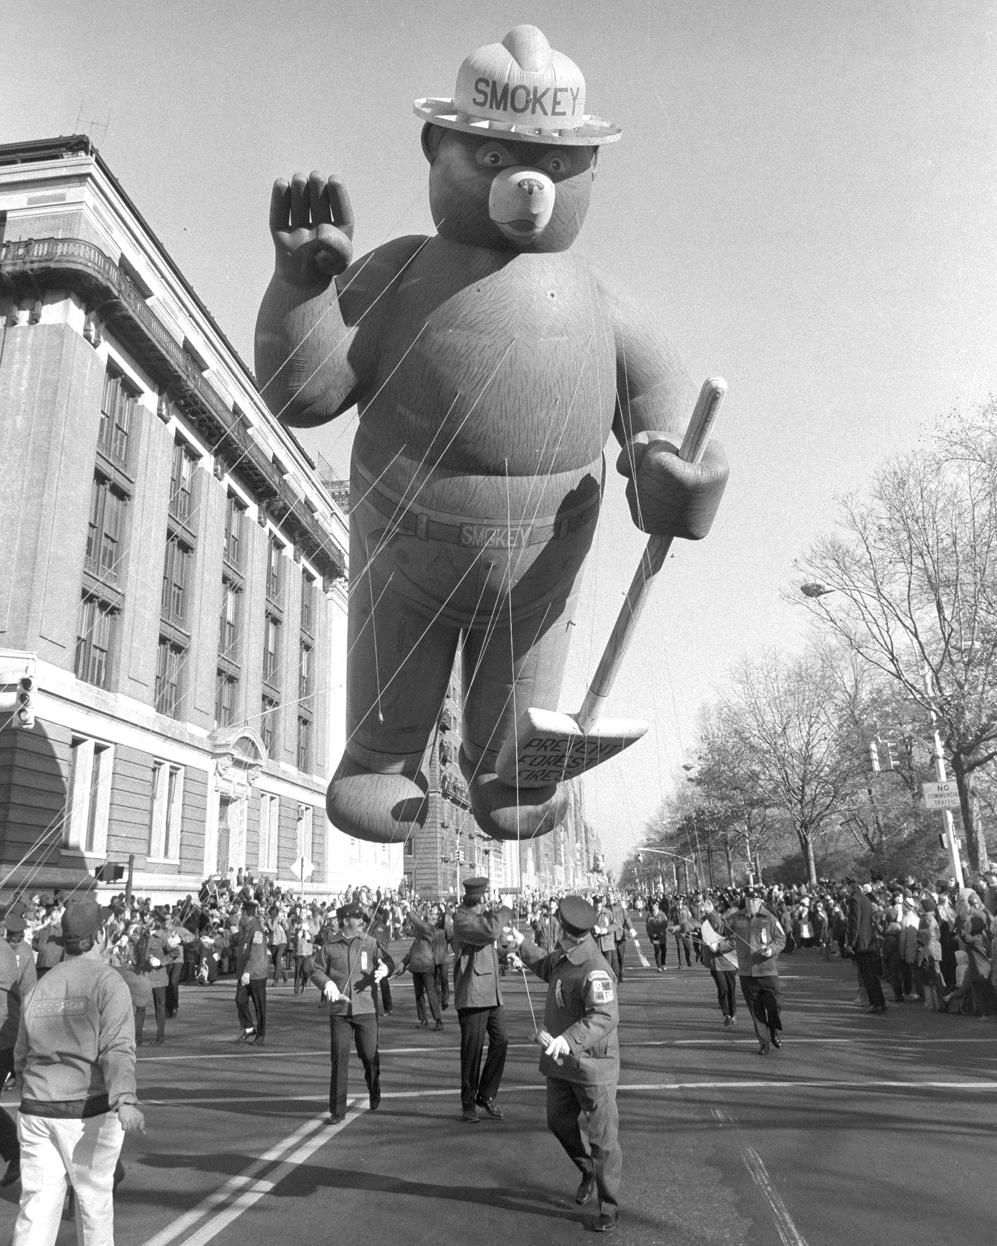 Pin By Toby On Macy S Thanksgiving Day Parade In 2020 Macy S Thanksgiving Day Parade Thanksgiving Parade Macys Parade